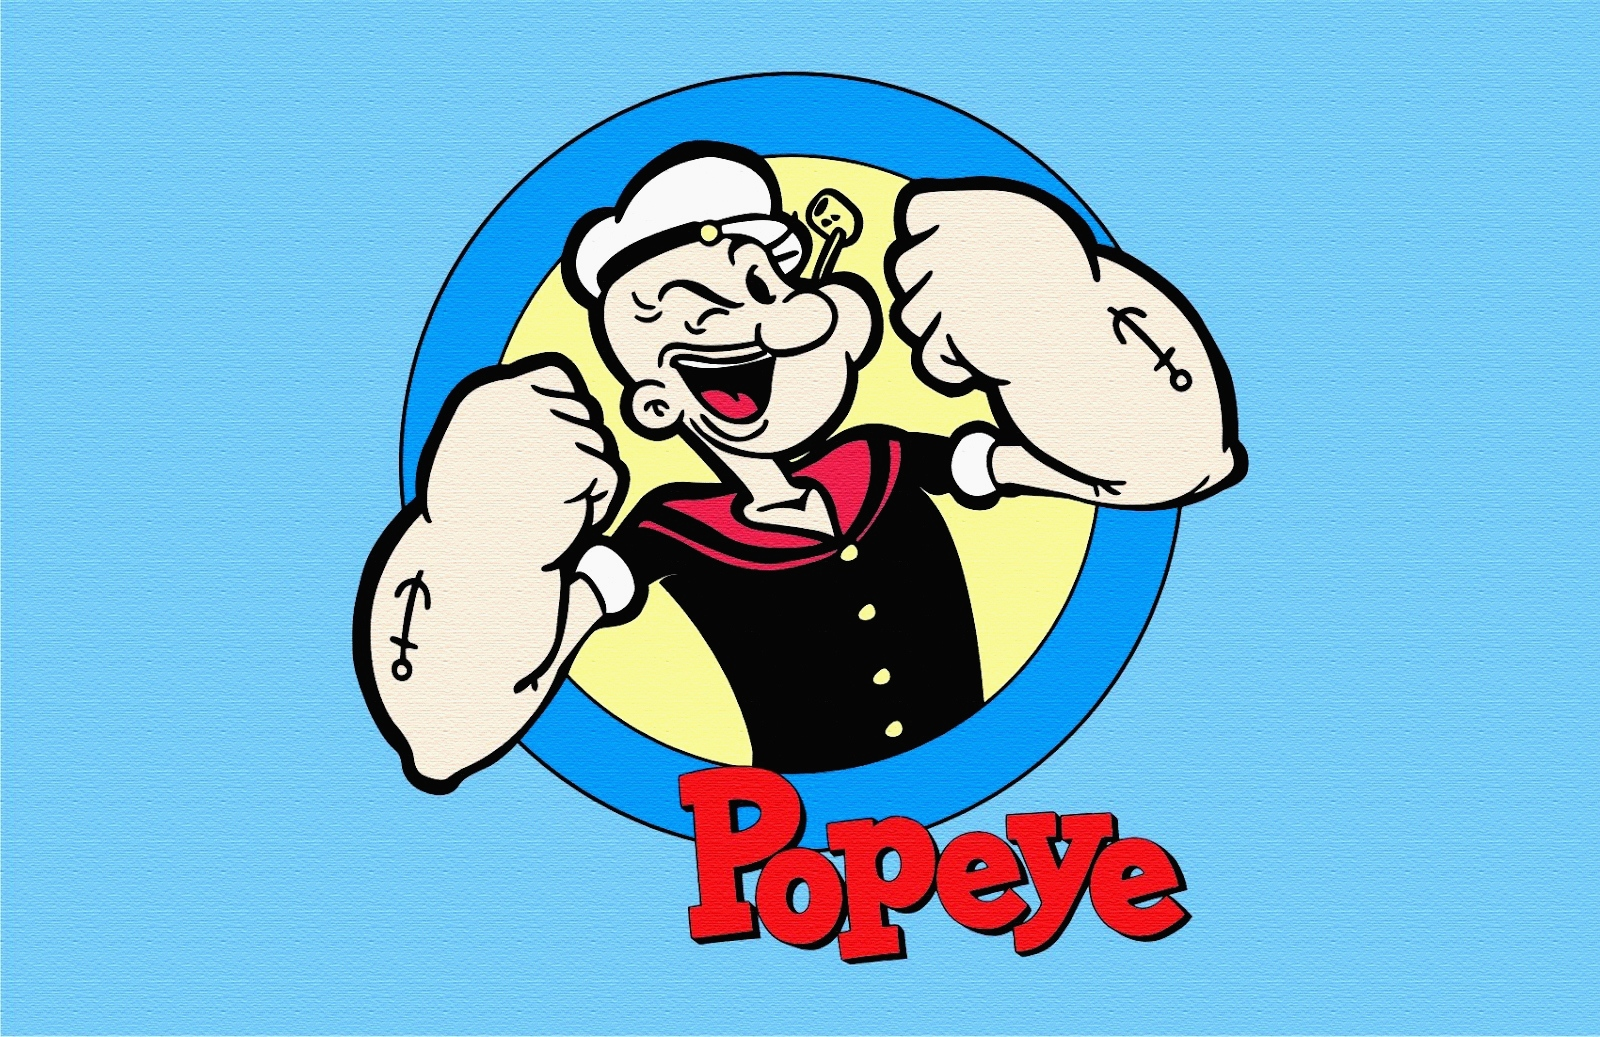 popeye the sailor man pictures